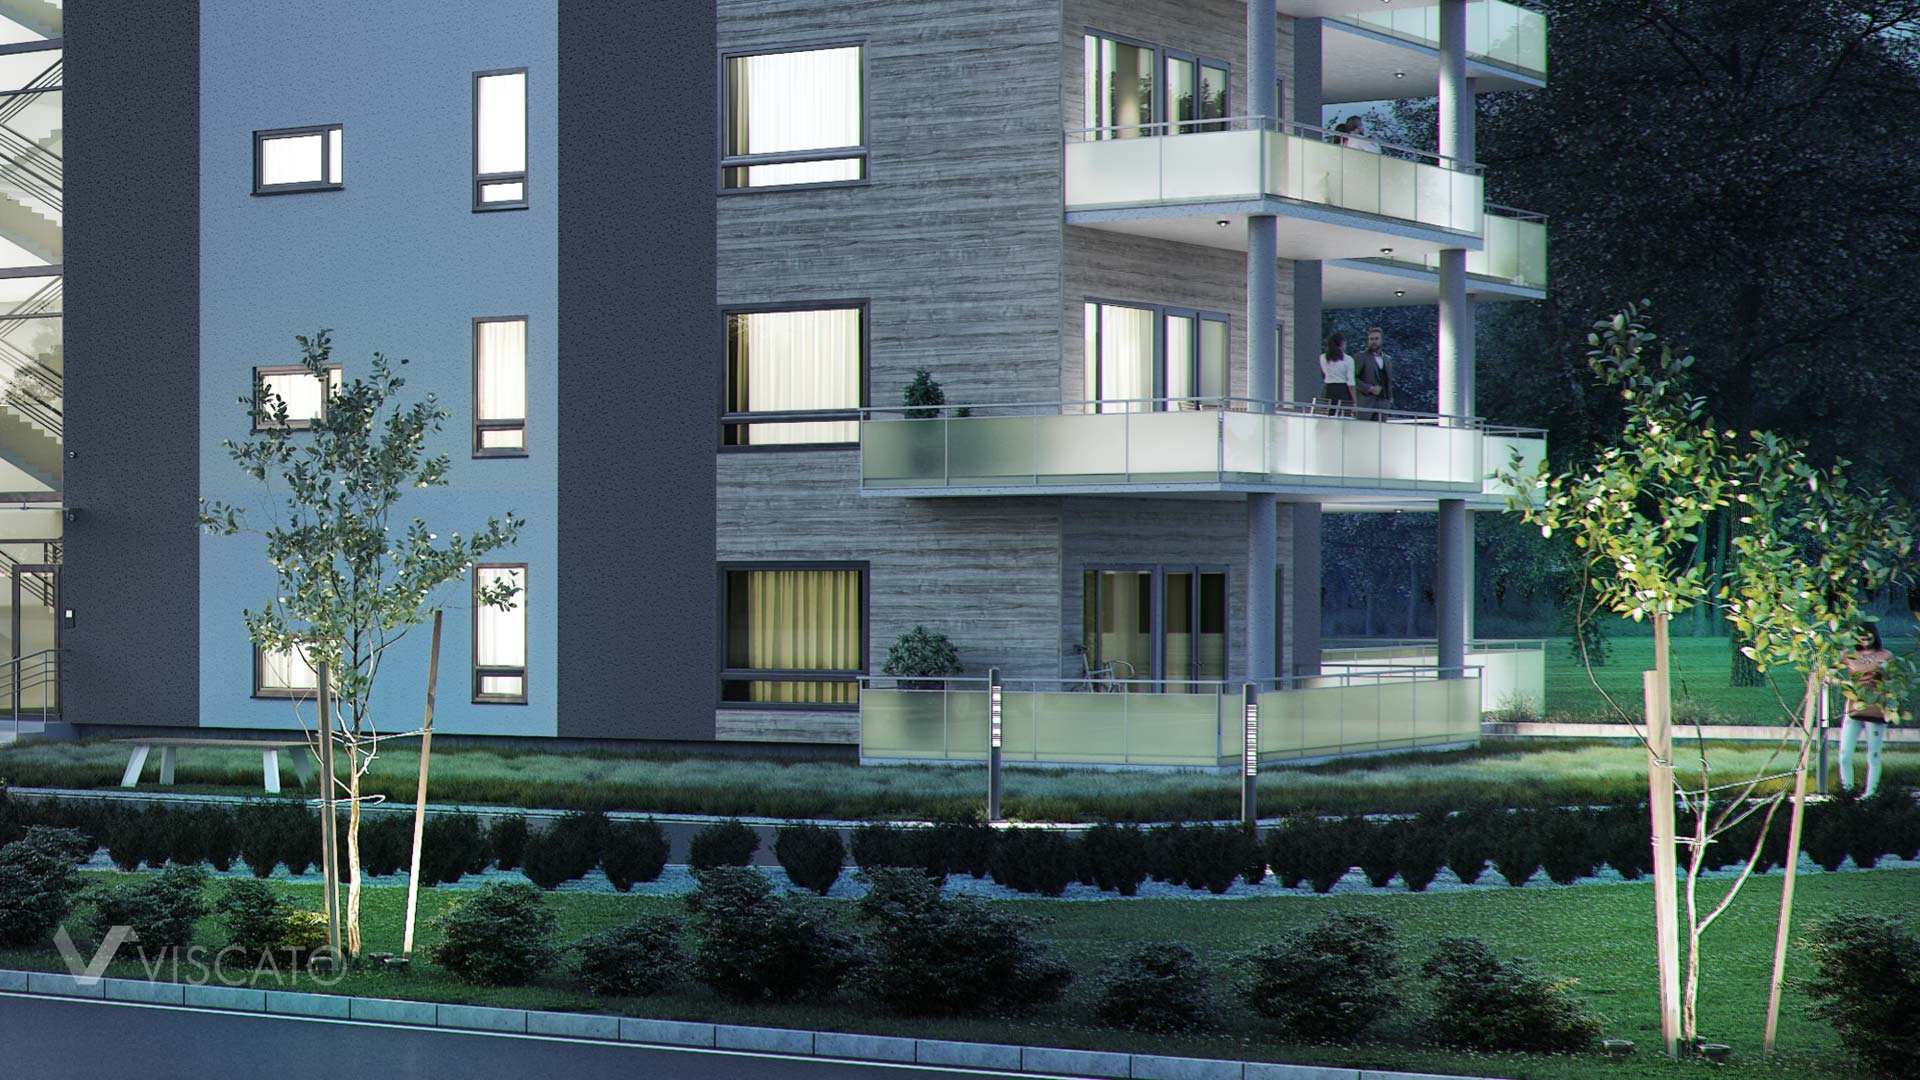 3D visualisation of a block of flats in Norway- night view